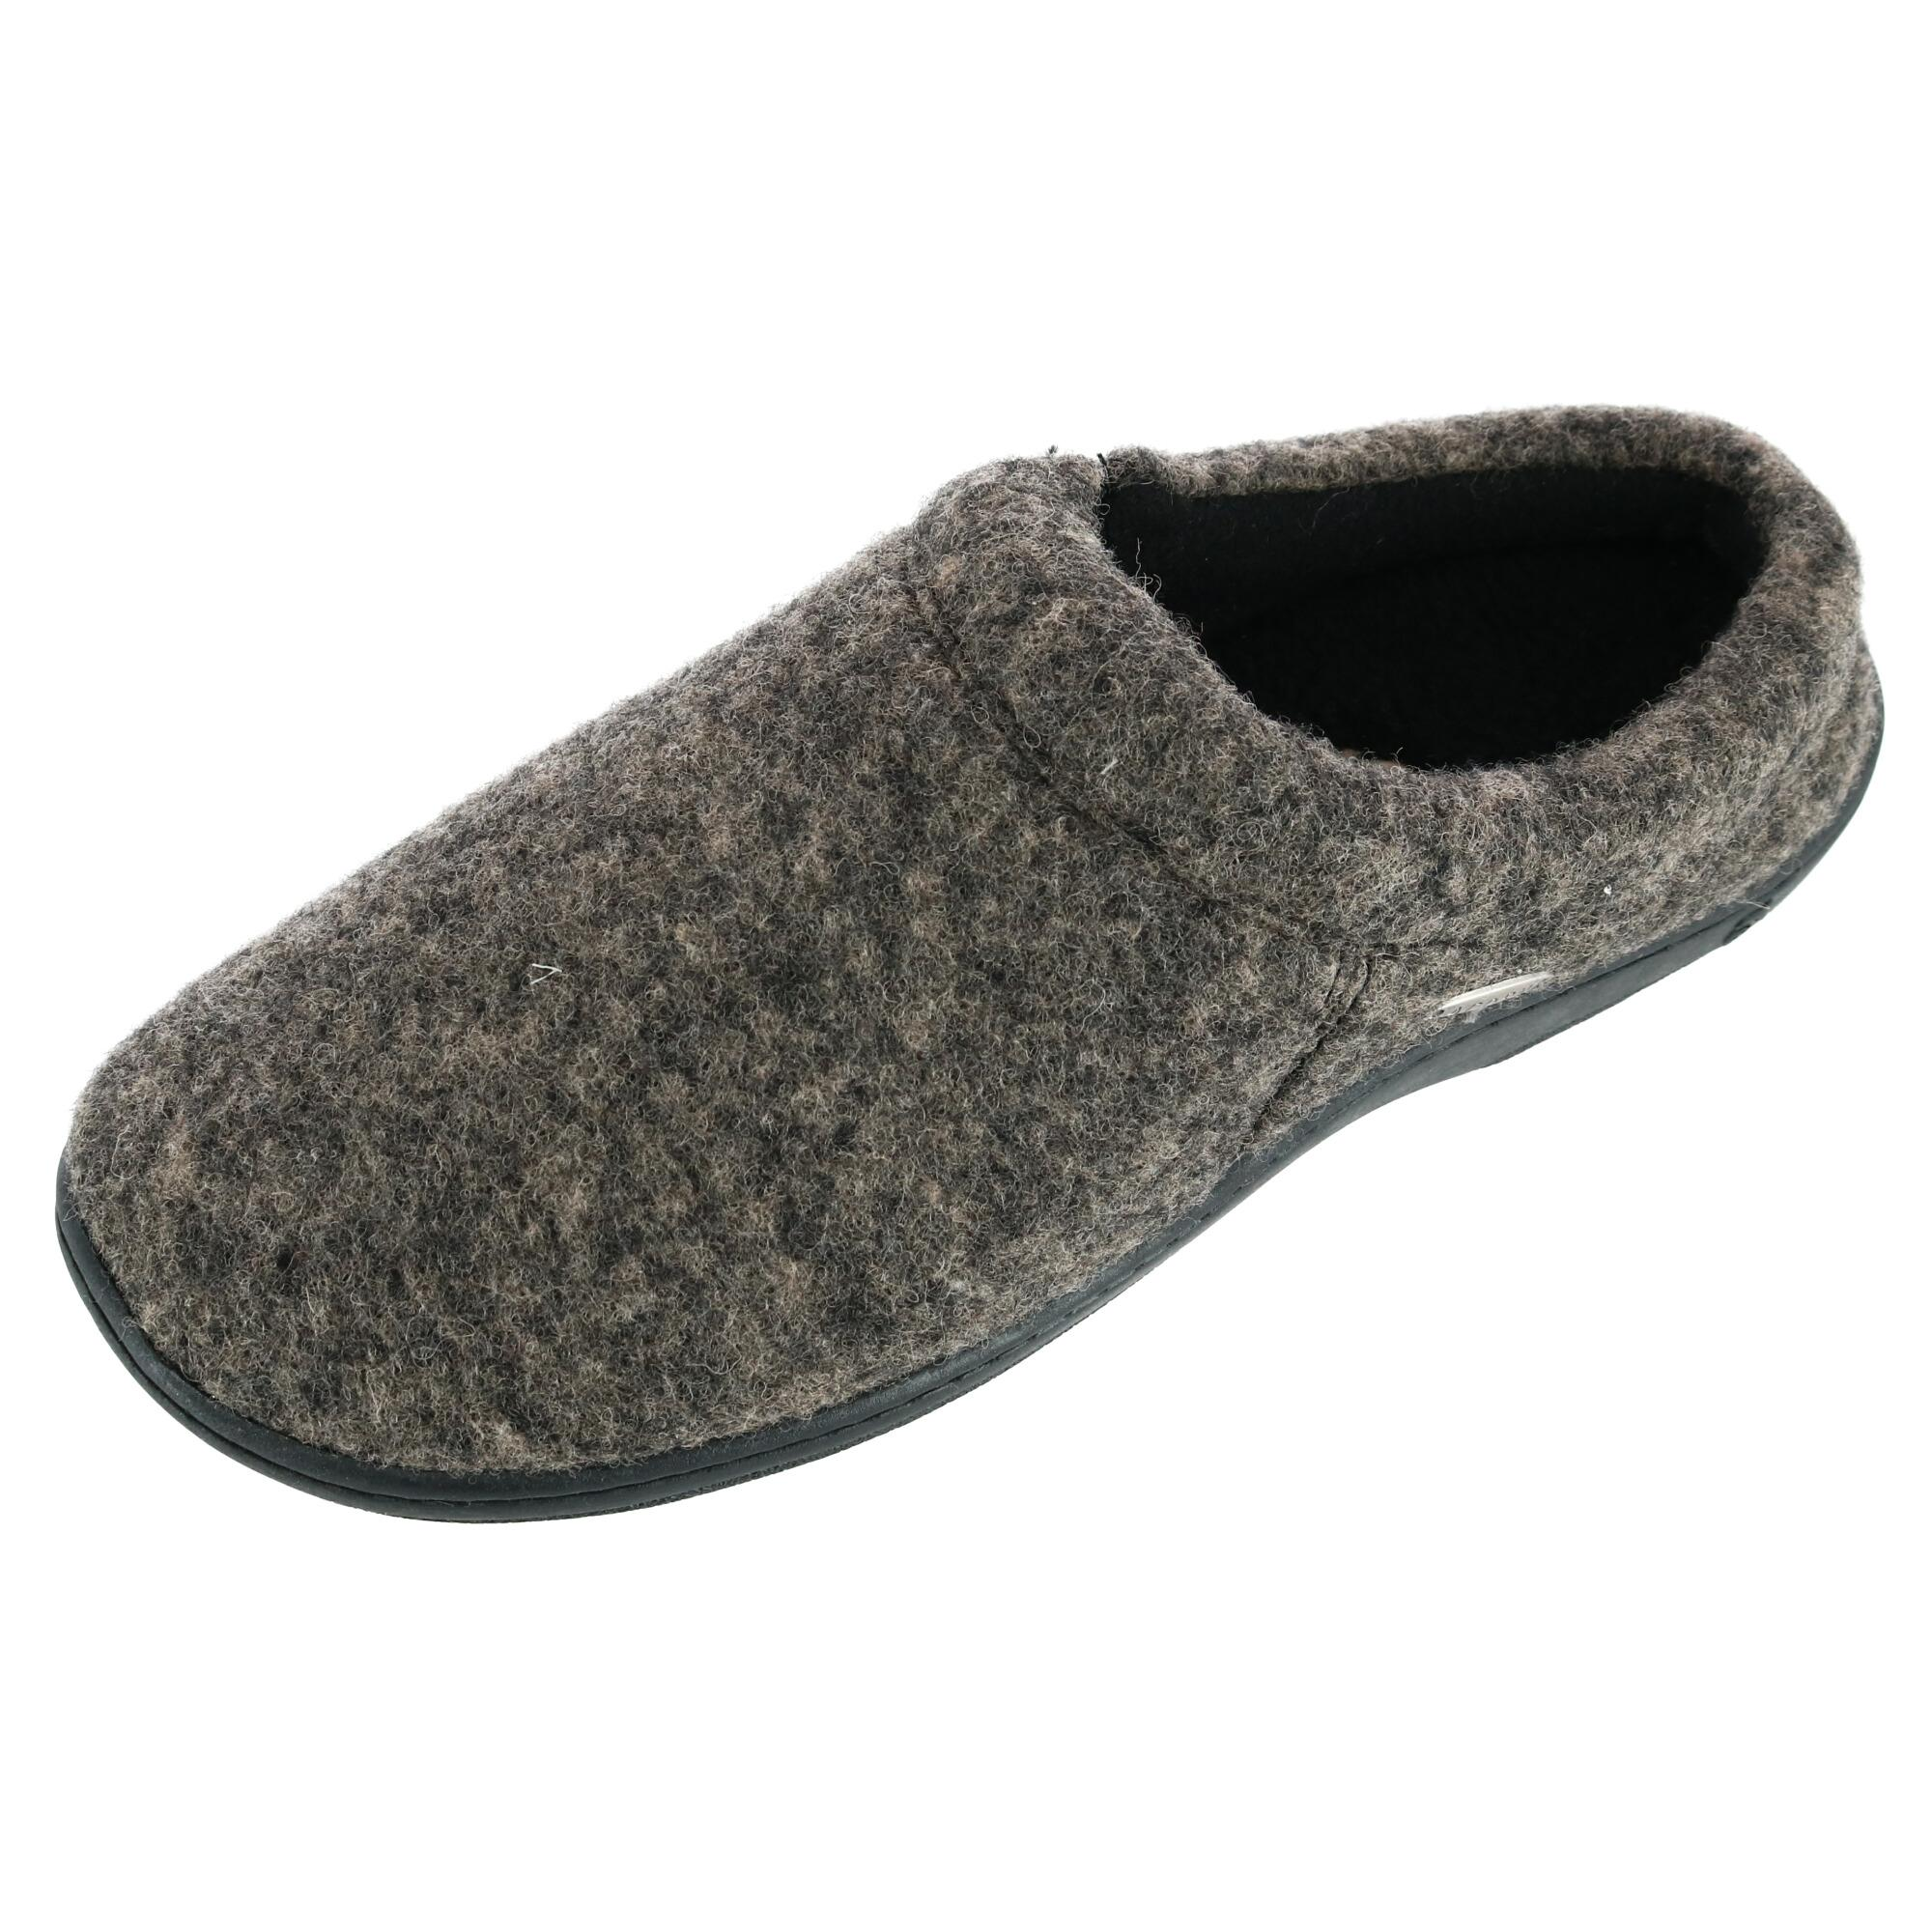 New Acorn Men's All Day Wear Digby Gore Slippers